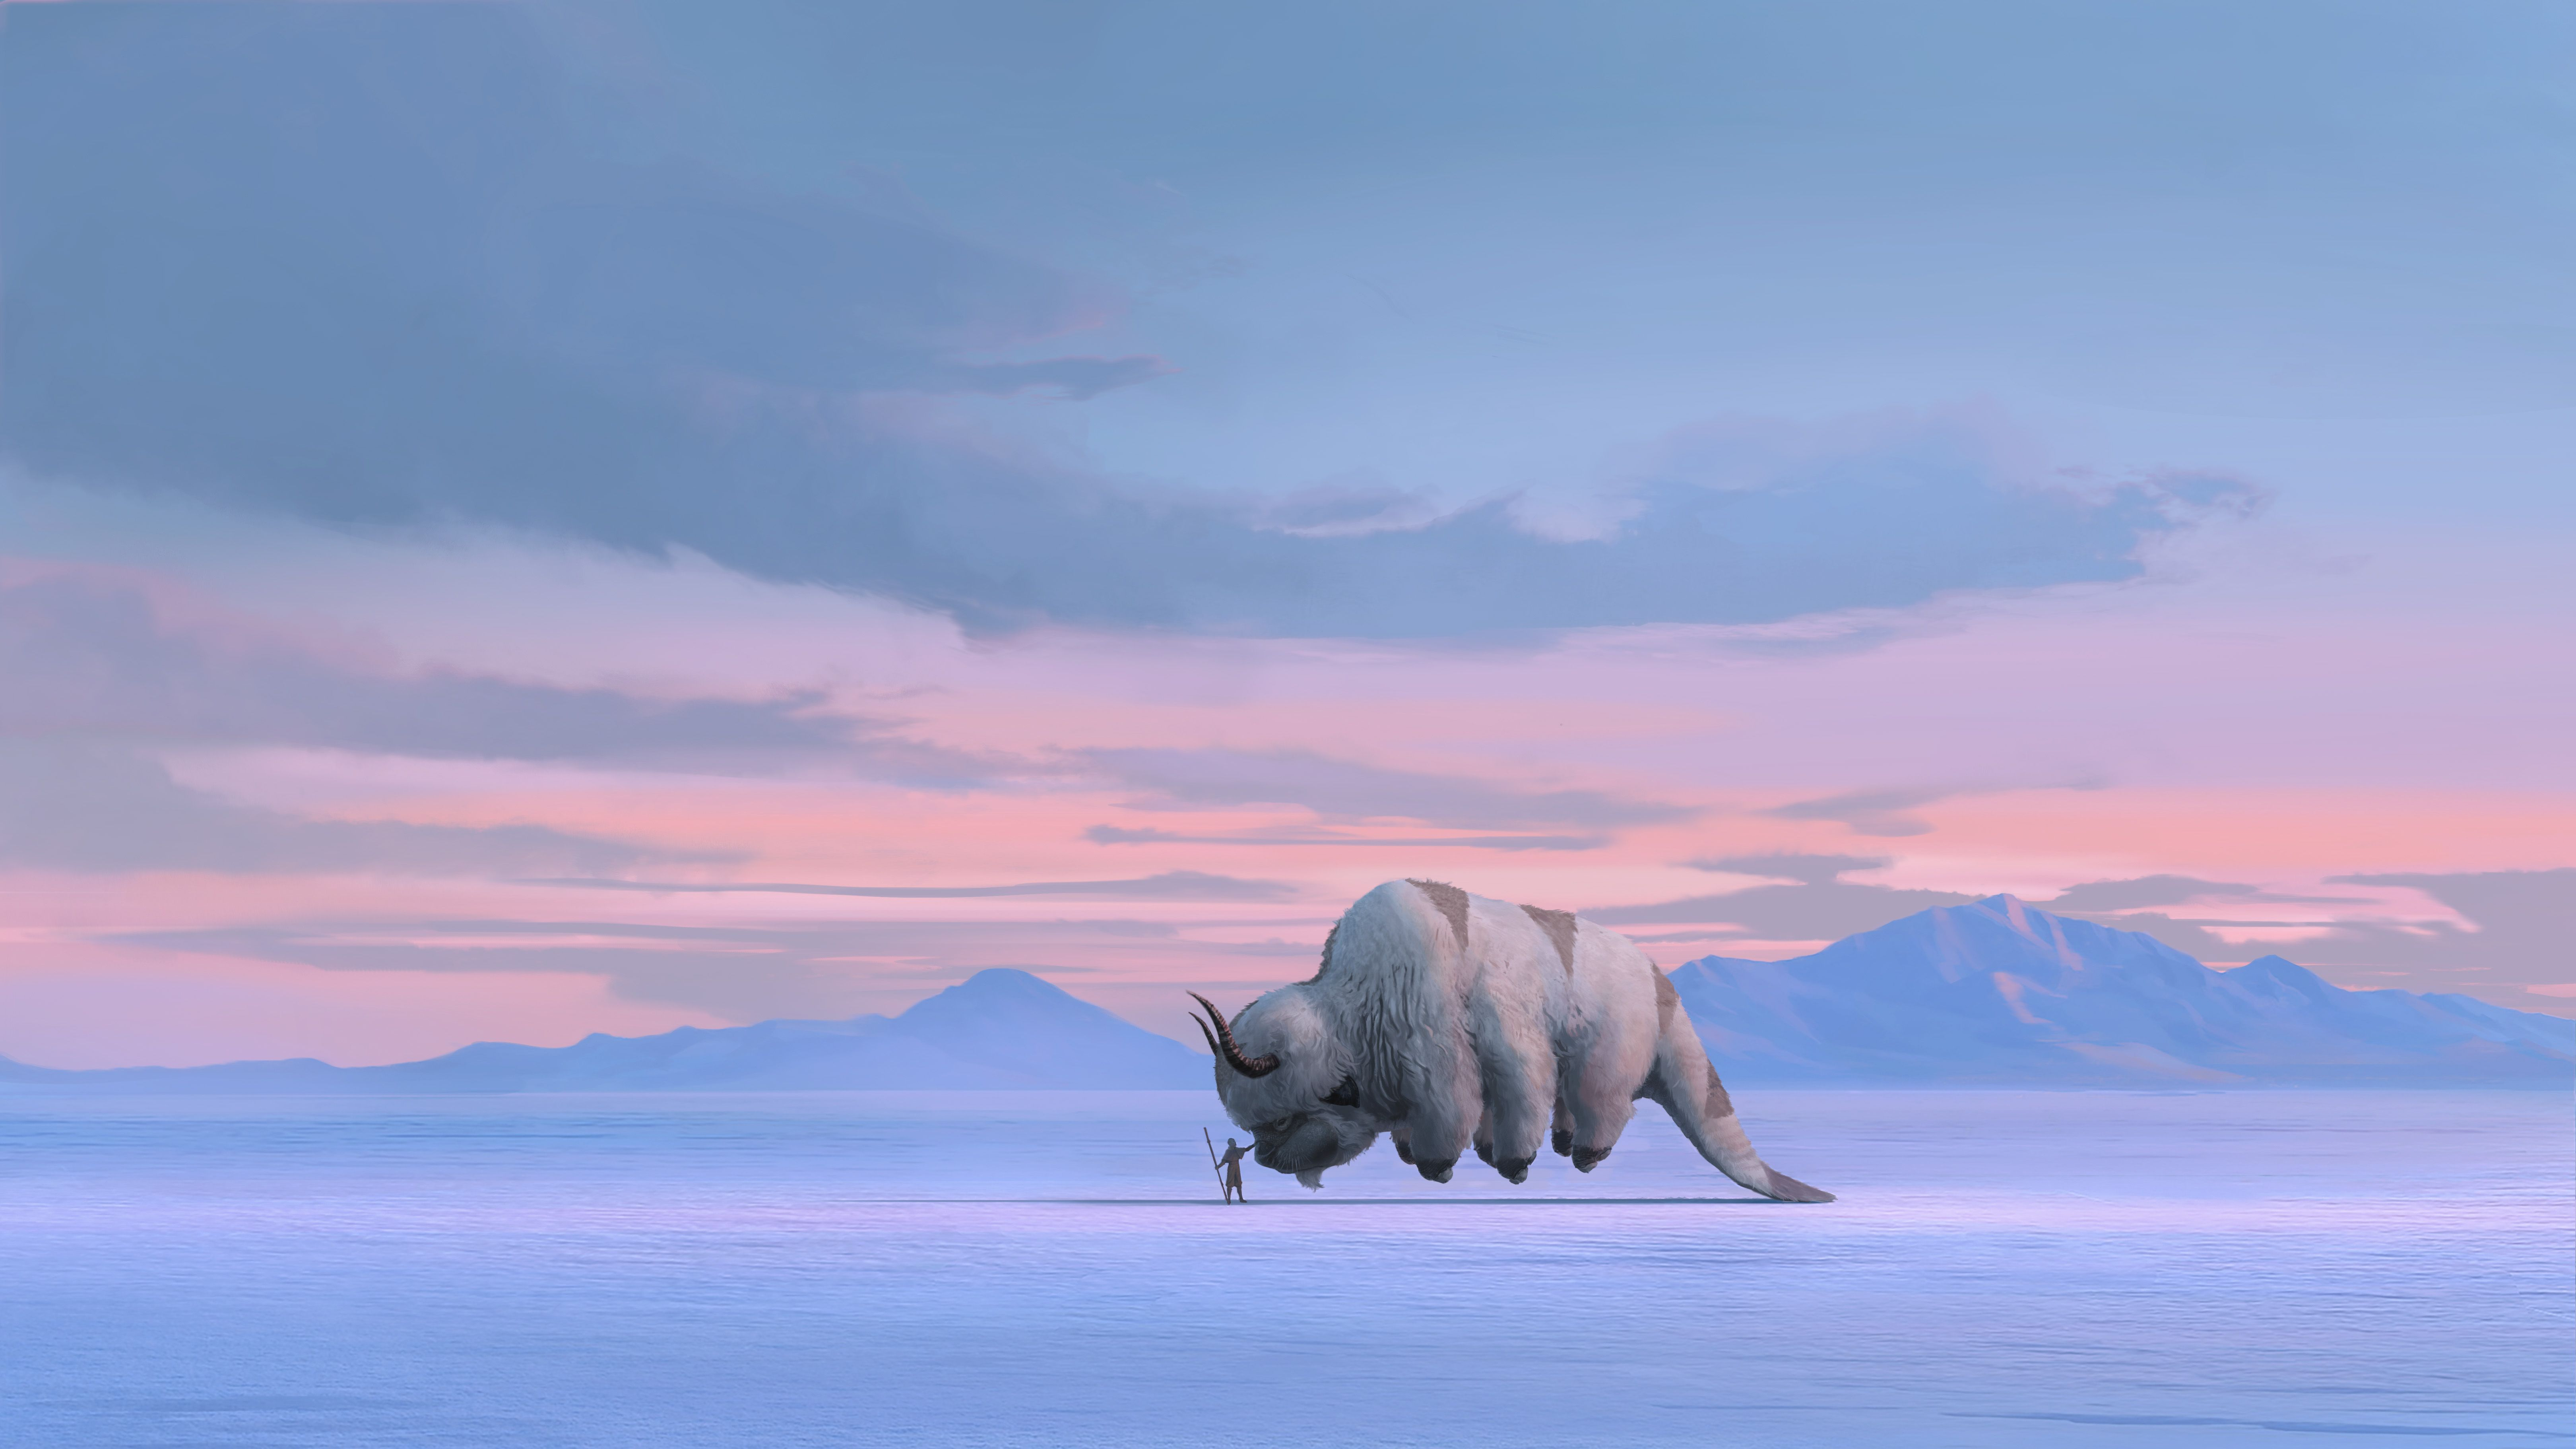 The Last Airbender' series, and the original creators are involved this time